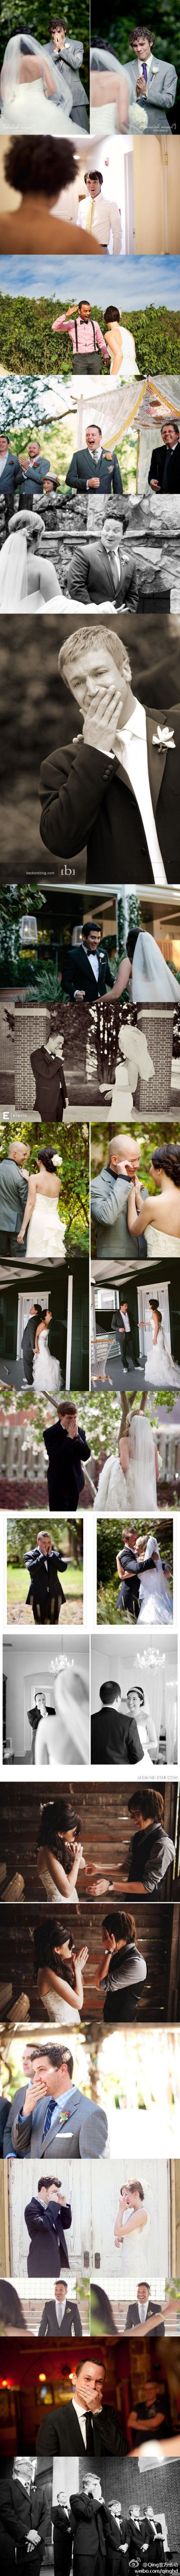 Must Have Wedding Day Photos